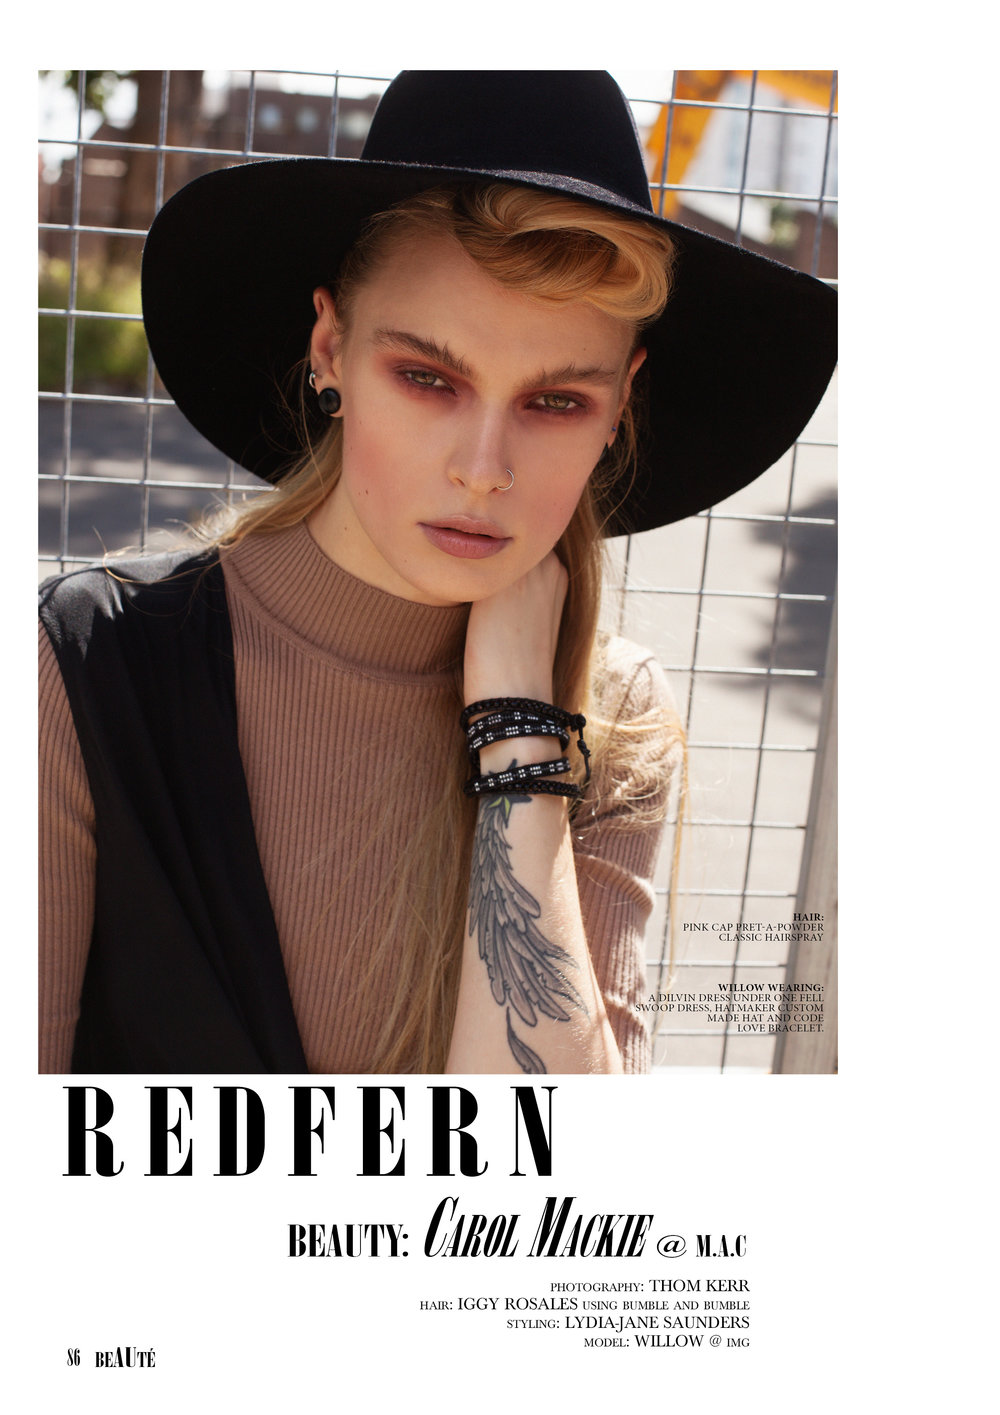 Laud Rebel Issue - Redfern - Carol Mackie - Single Pages.jpg